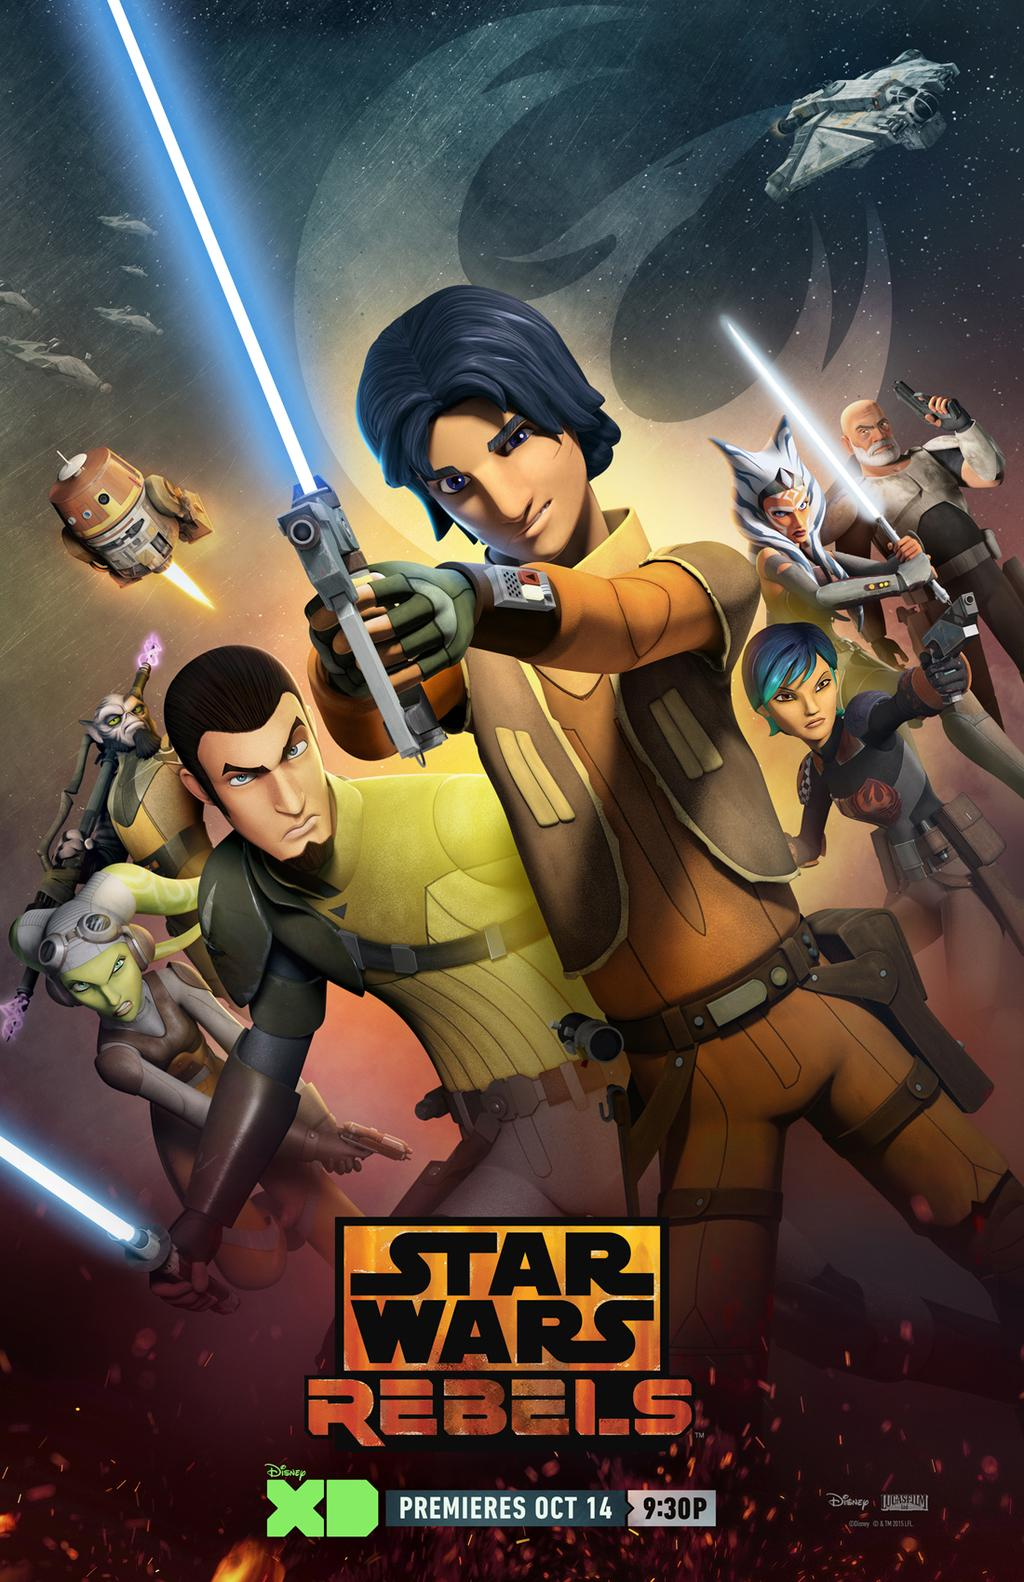 Star Wars Rebels Wallpapers Tv Show Hq Star Wars Rebels Pictures